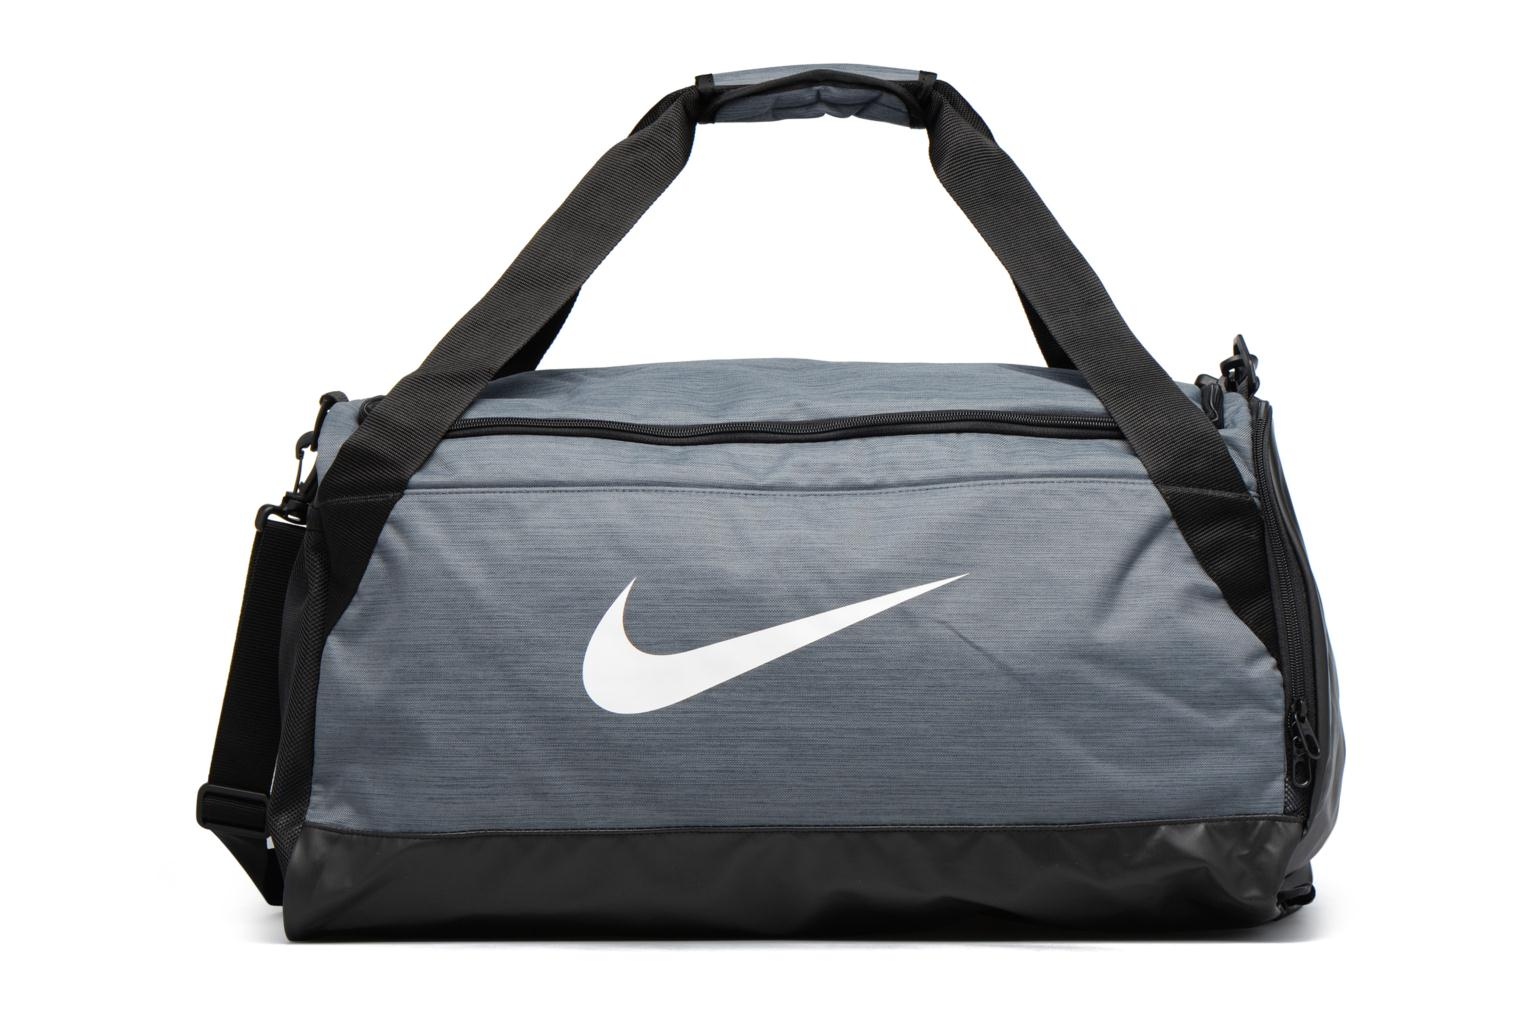 NikeBrasilia Duffle bag M Flint grey/Black/White